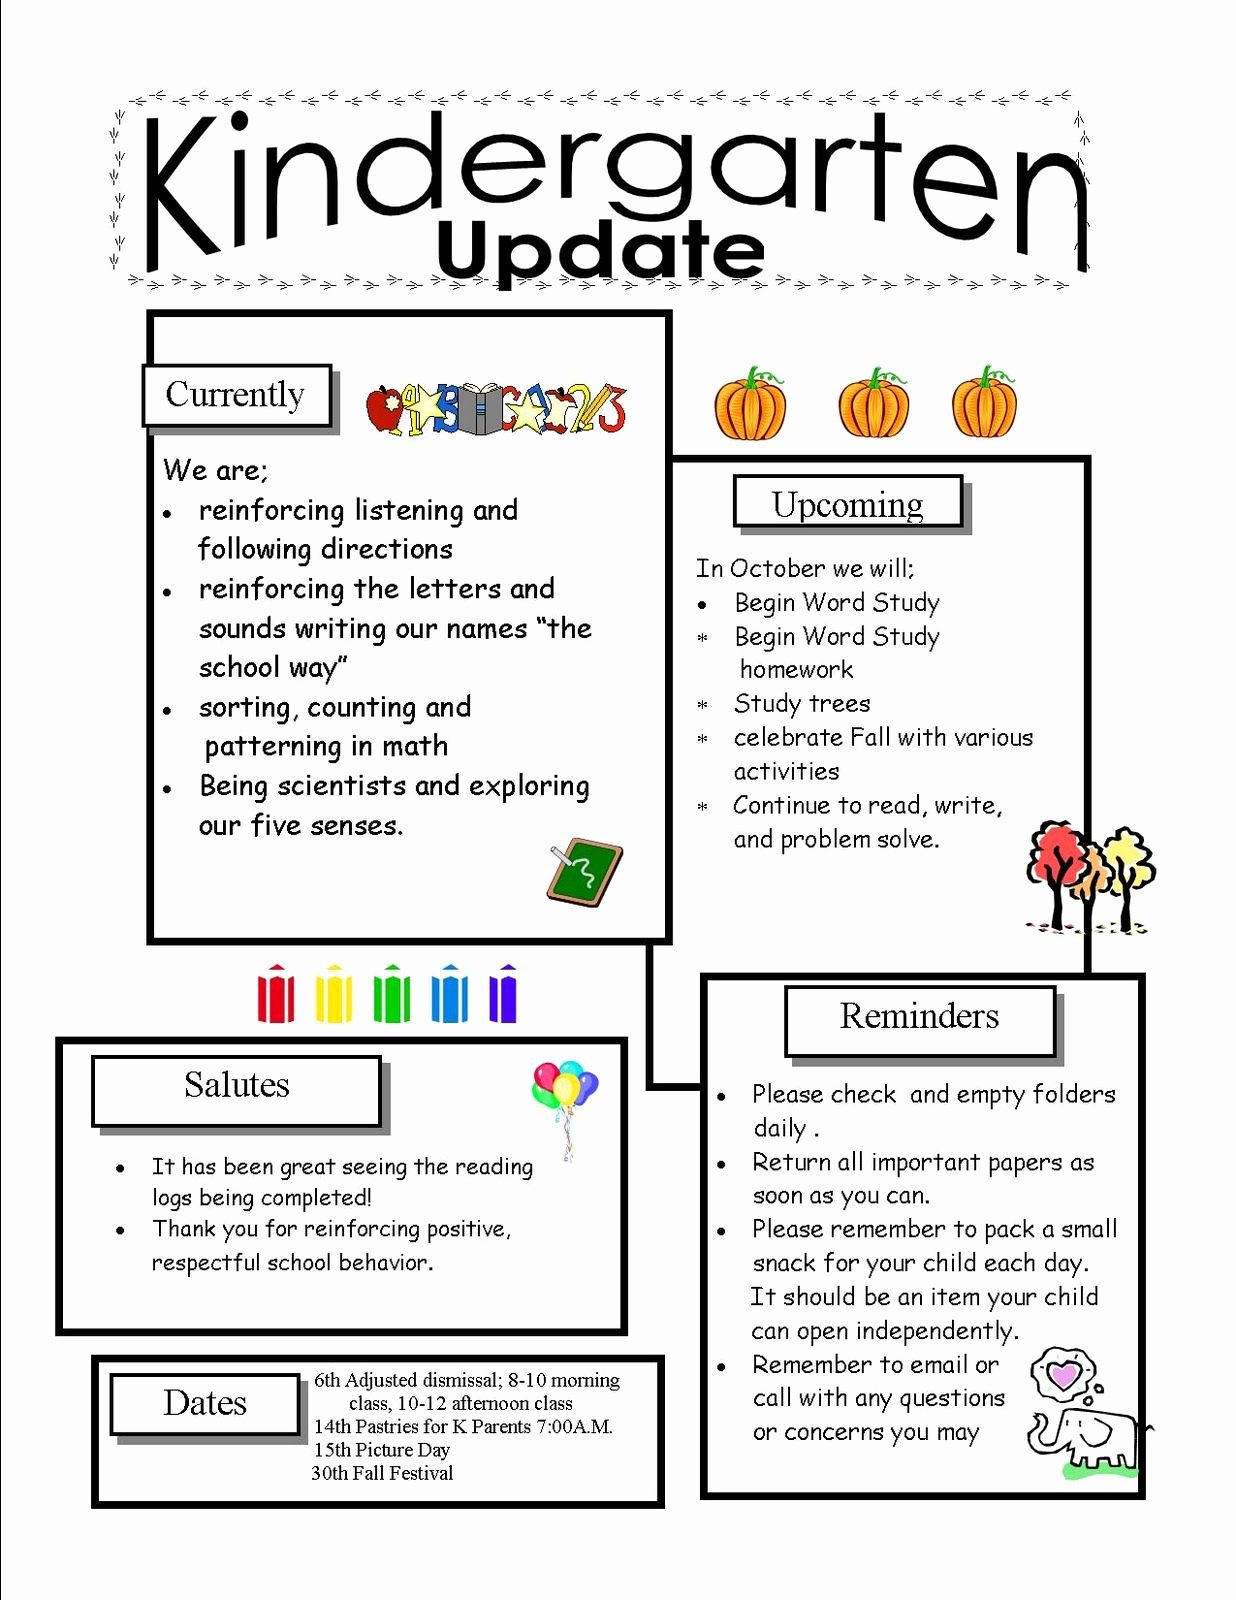 Free Preschool Newsletter Templates Lovely Kindergarten Newsletter Templates for Free